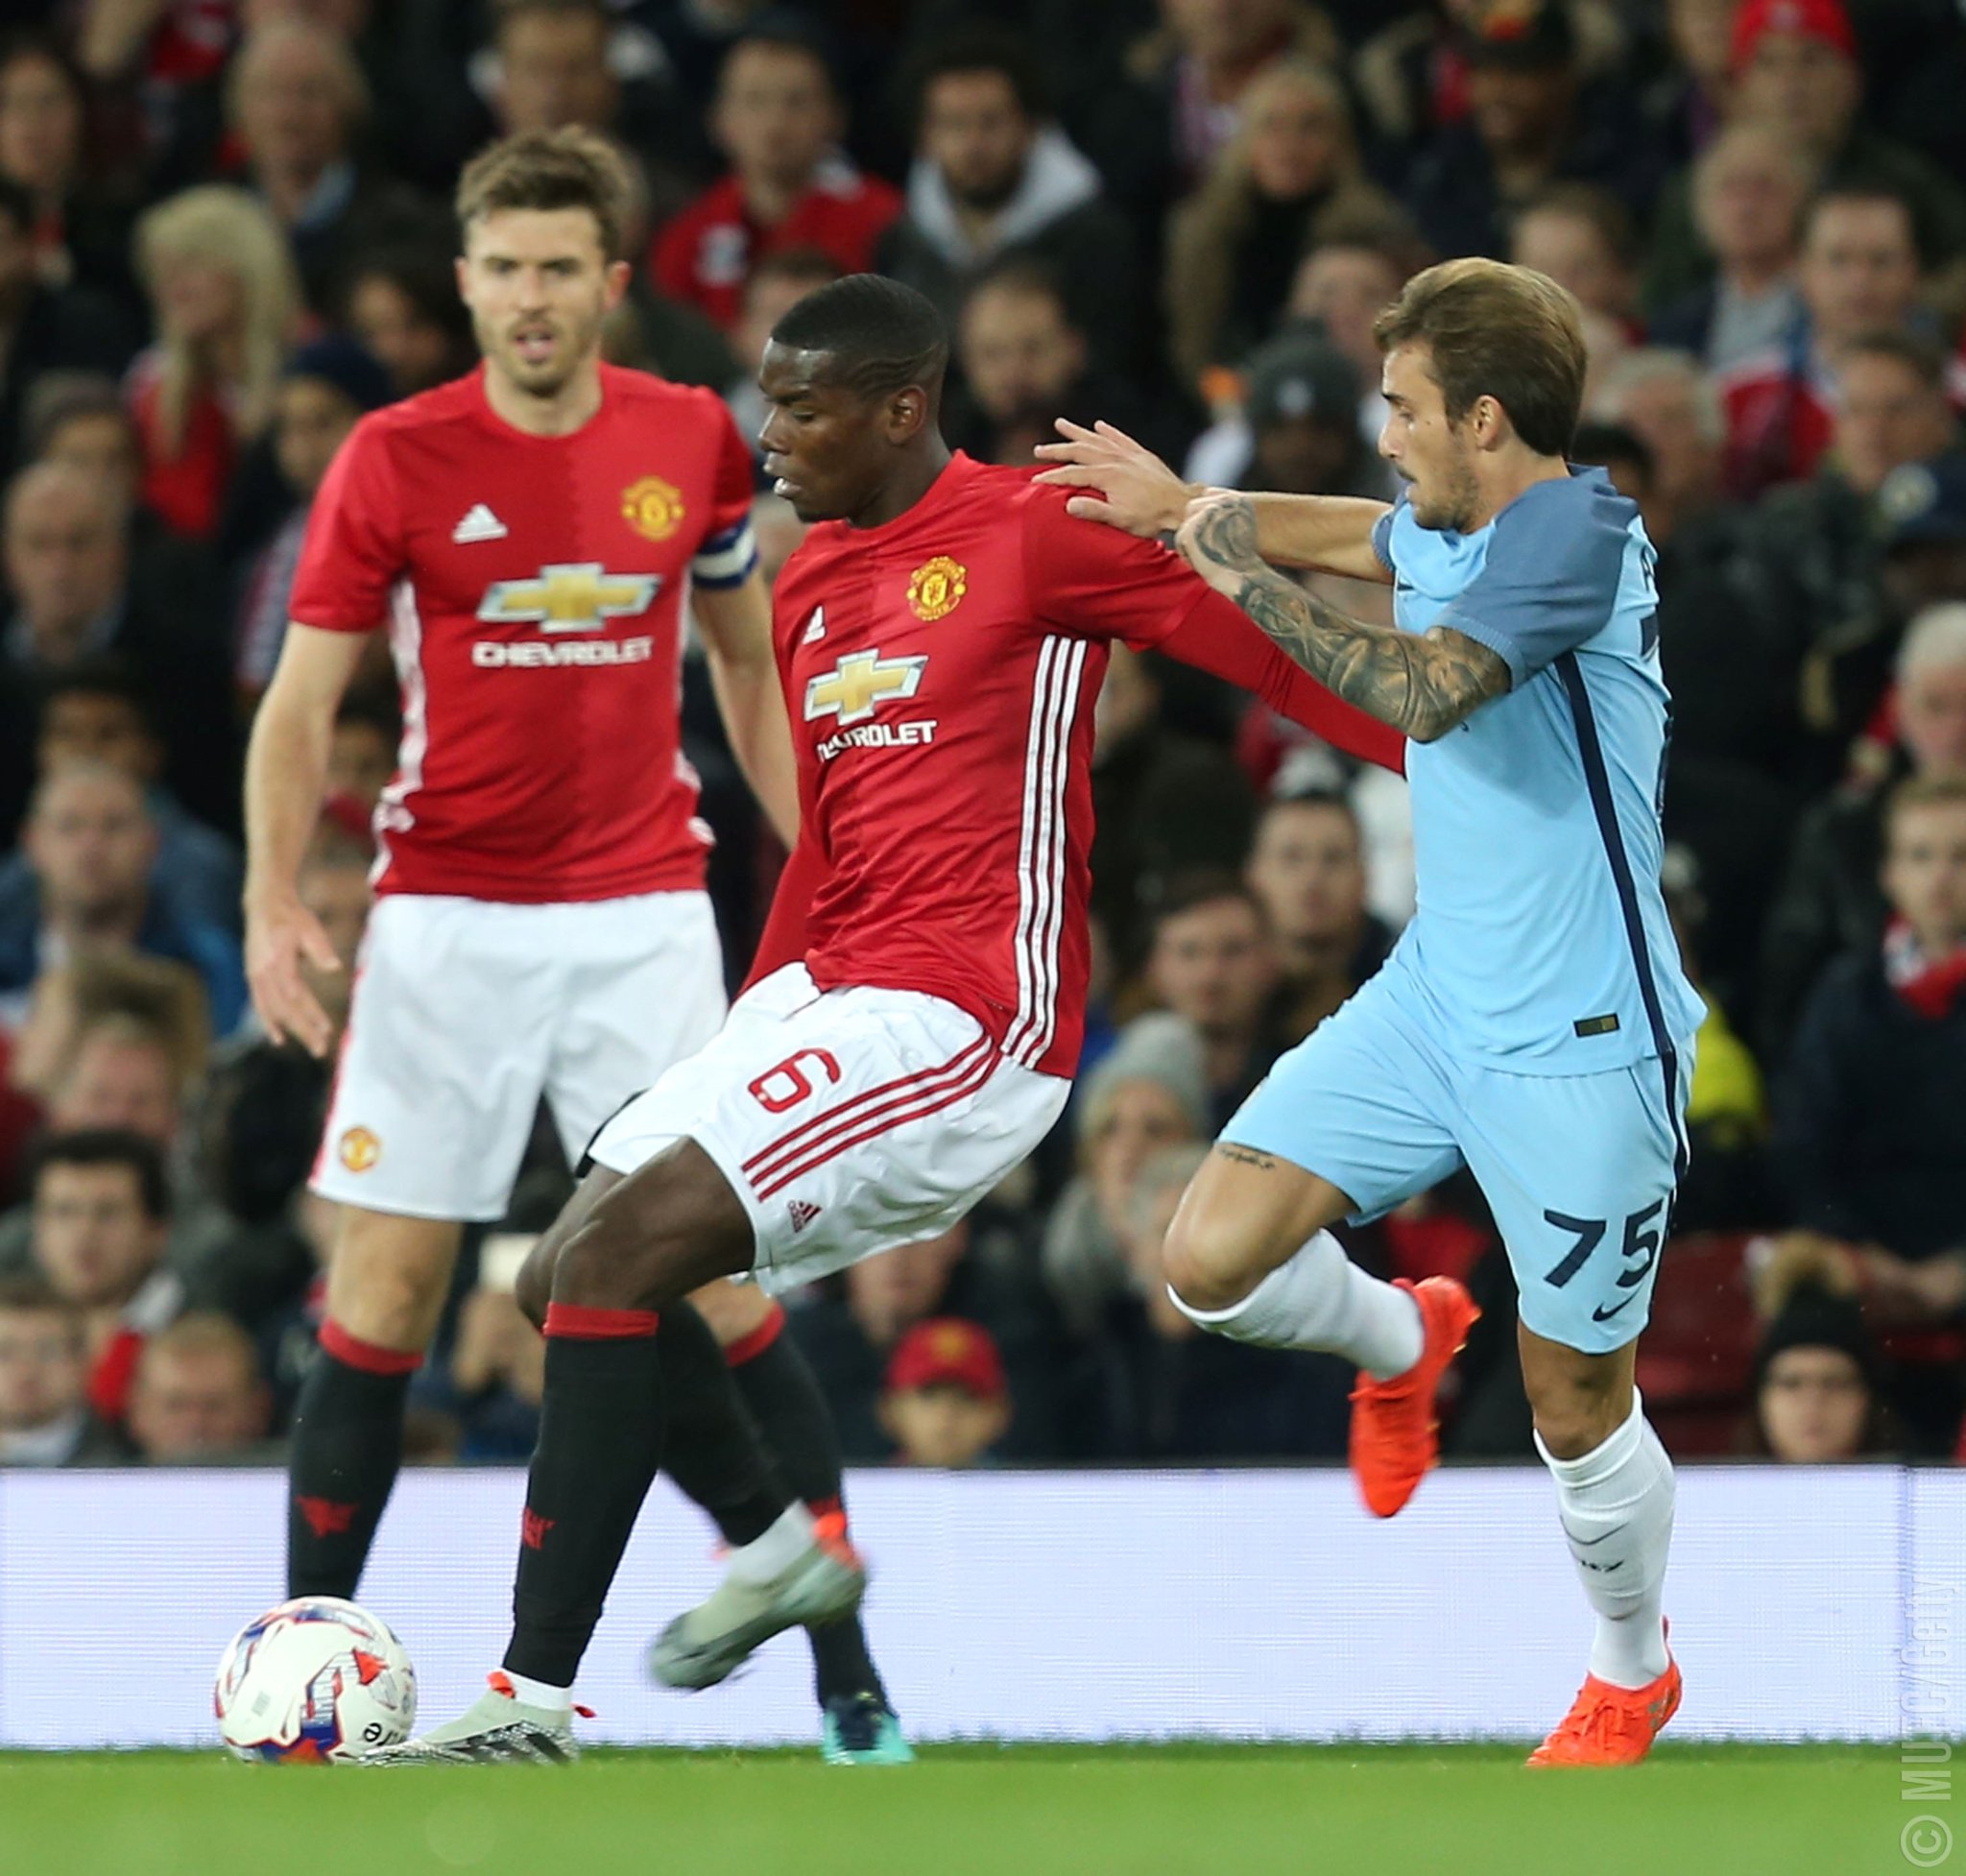 EFL Cup: Iheanacho Struggles As United Edge City; Arsenal To Face Saints